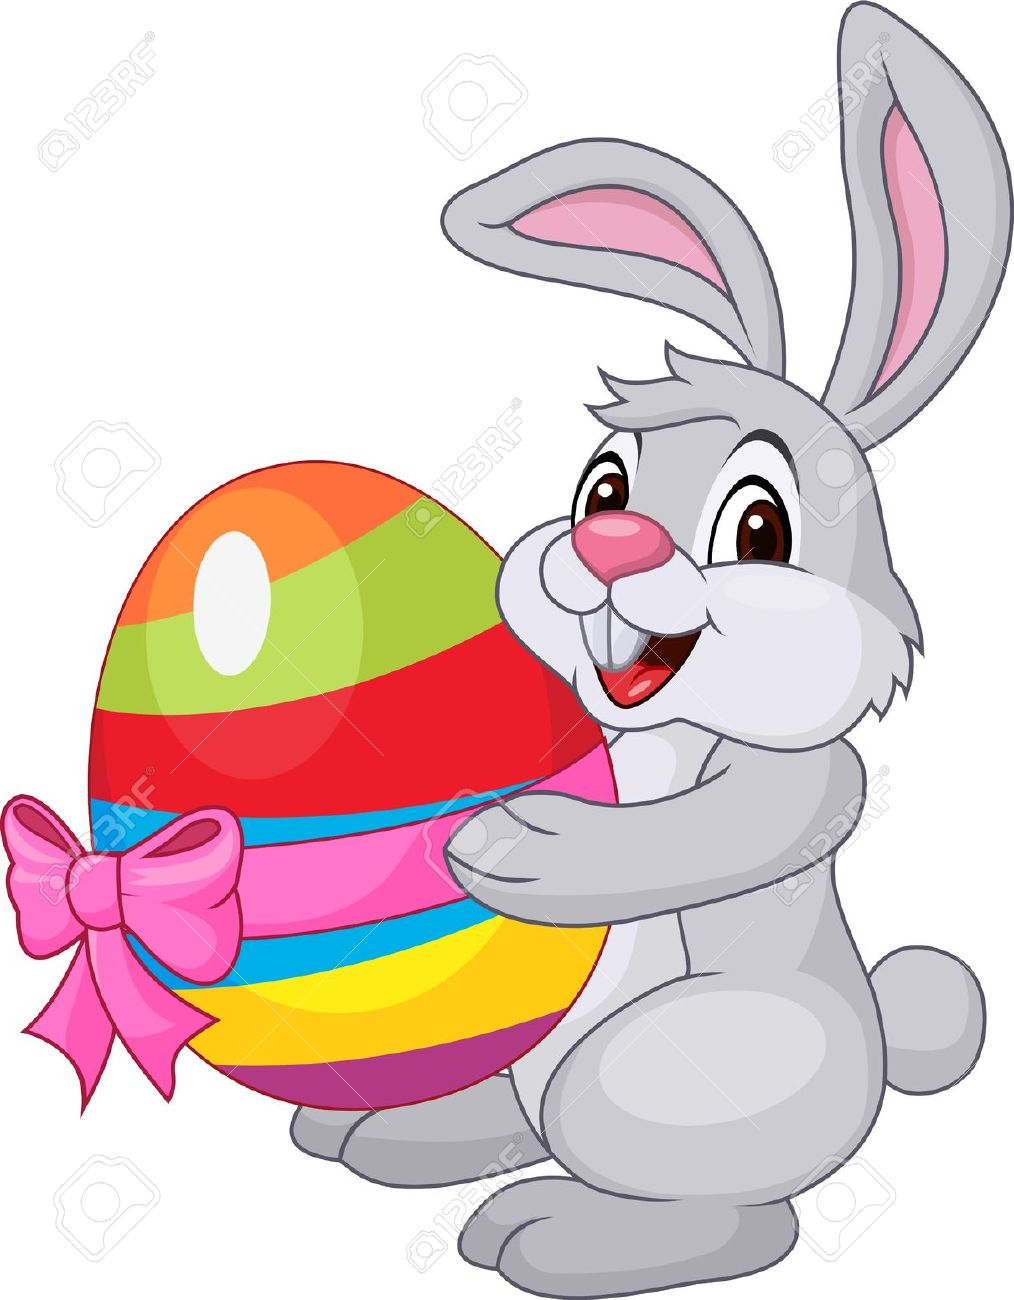 clipart easter bunny exercising image #8